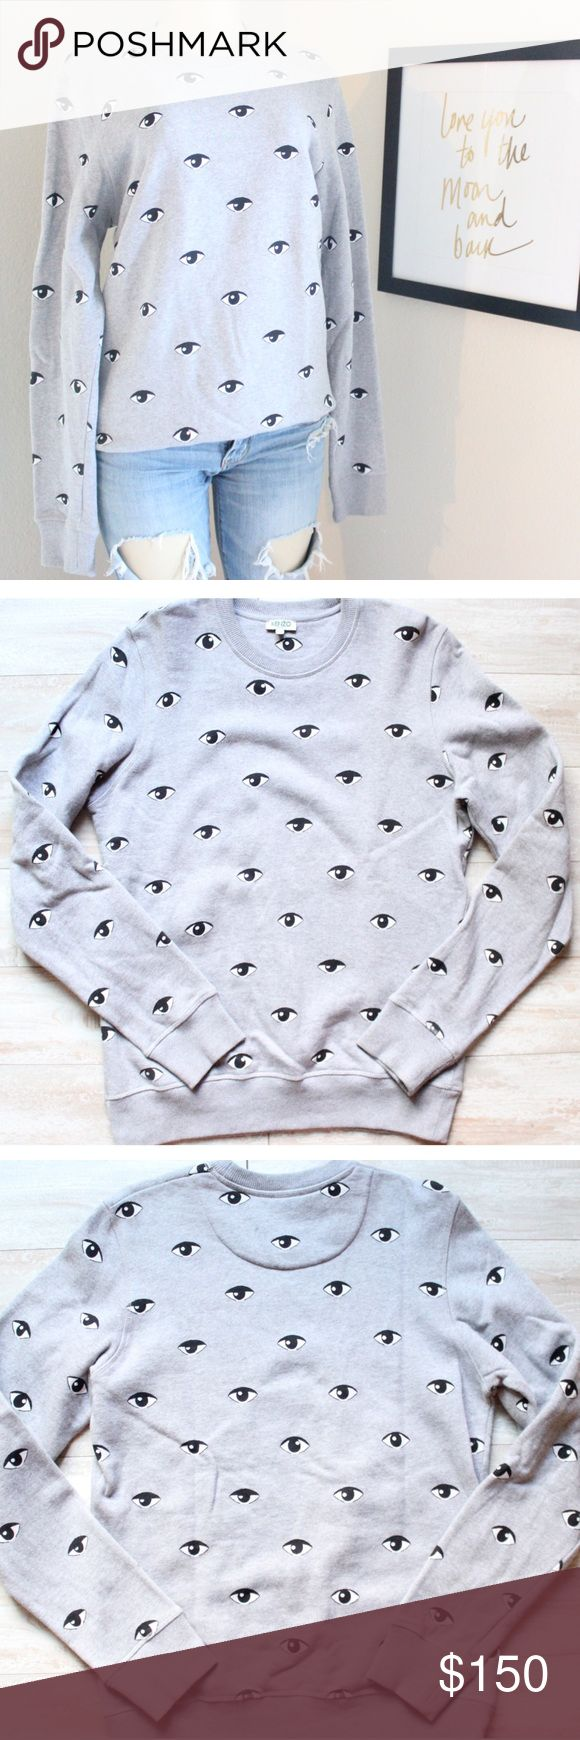 Kenzo Gray Eye Sweatshirt⭐️ Ok can we talk😍🔥 KENZO gray eye sweatshirt for women (but can also fit Men)size medium NWOT, new without tags, sold out everywhere, when I tell you this is the softest most majestic feeling cotton I mean it, this sweater is so EYE catching 👁(pun intended) you will definitely be the FOCAL😜👀point in the room, this sweatshirt is everything⭐️ Kenzo Sweaters Crew & Scoop Necks